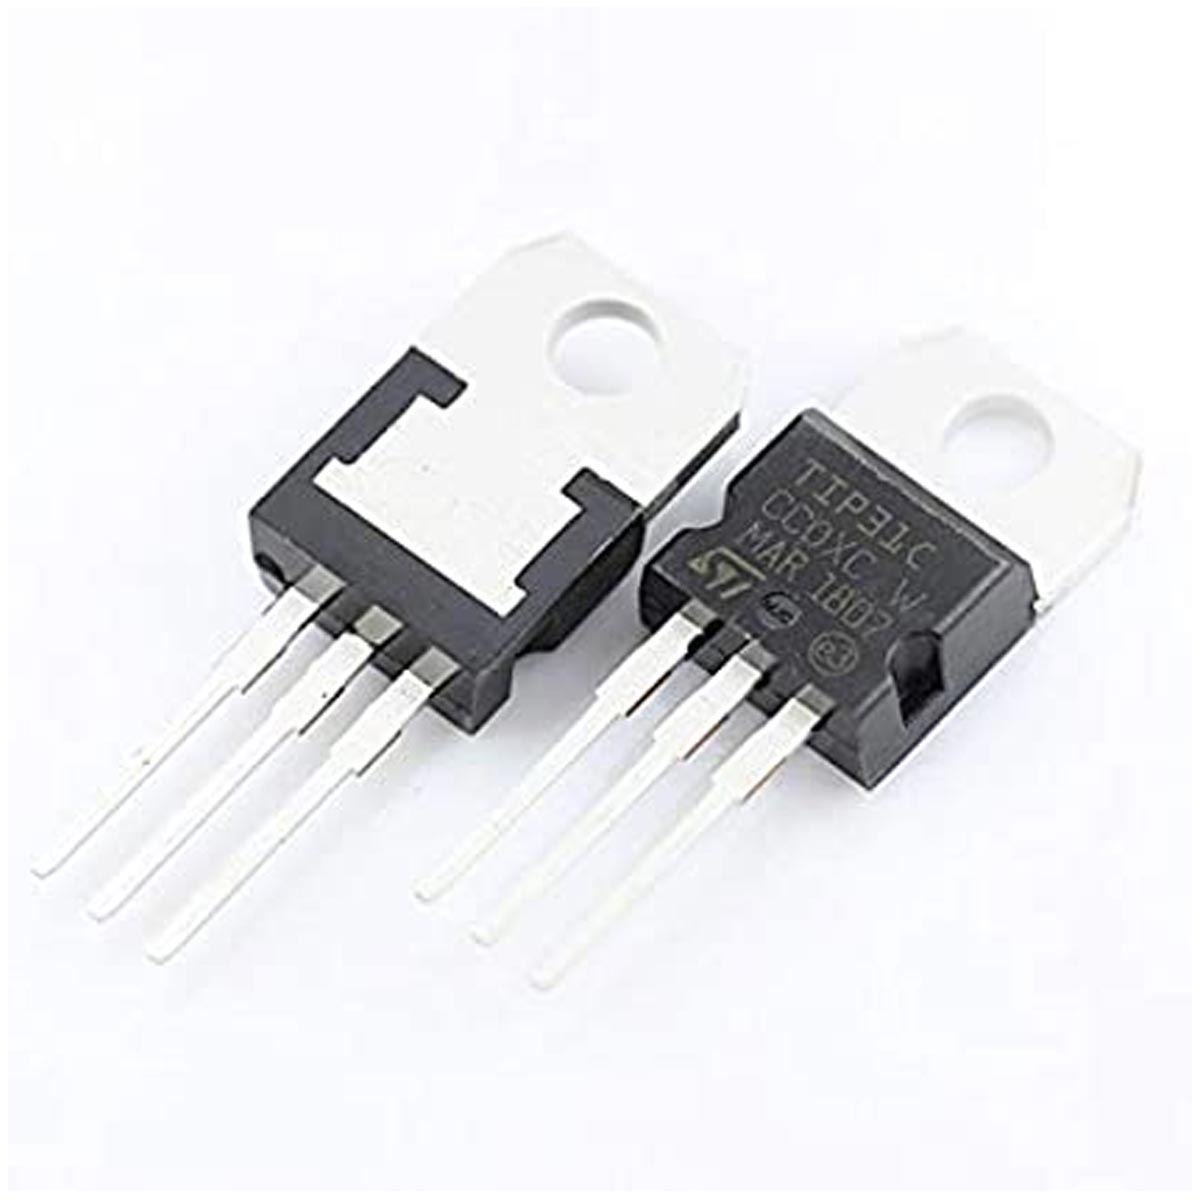 3x Transistor NPN TIP31c 100v 3A Power To-220